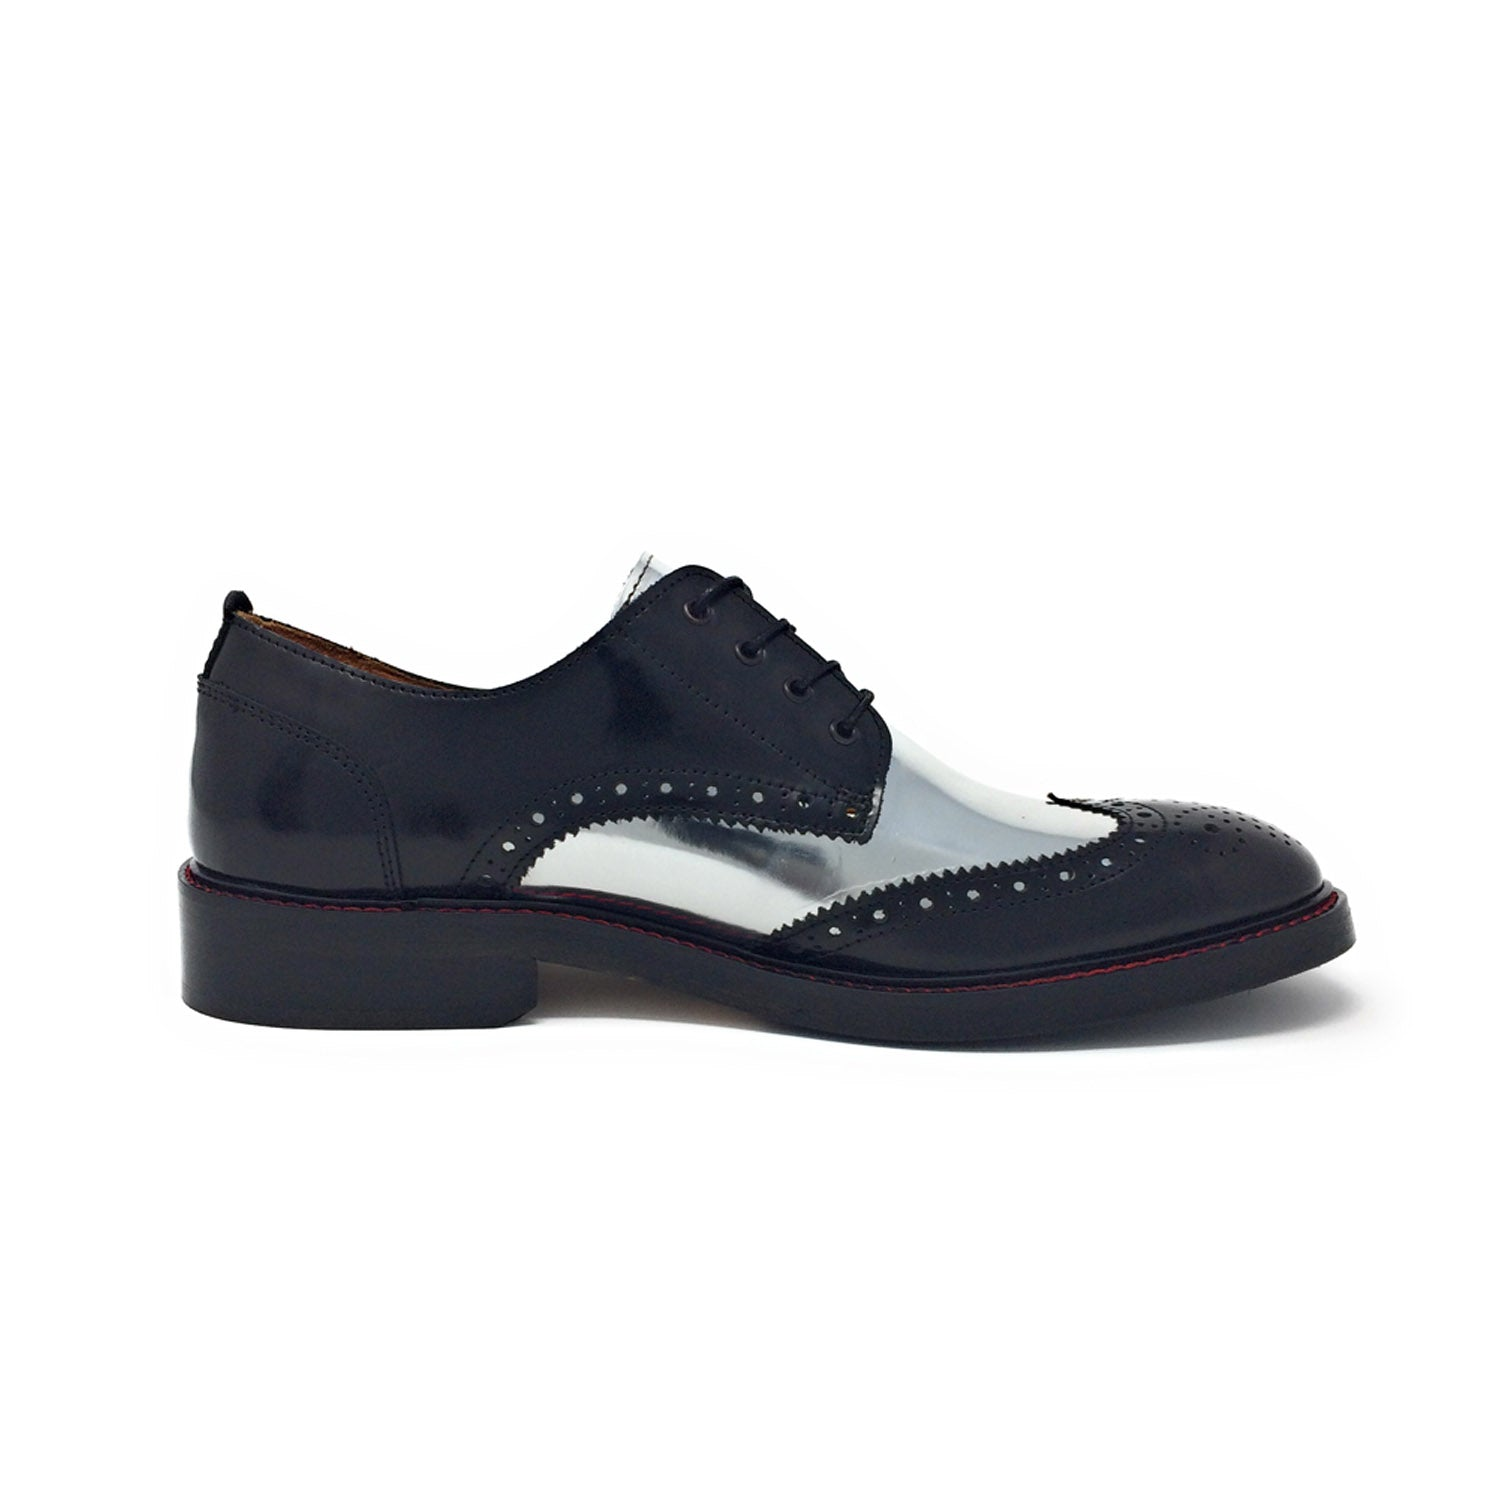 NiK Kacy Luxury, Handcrafted Black and Silver Wingtip Shoes Limited-Edition